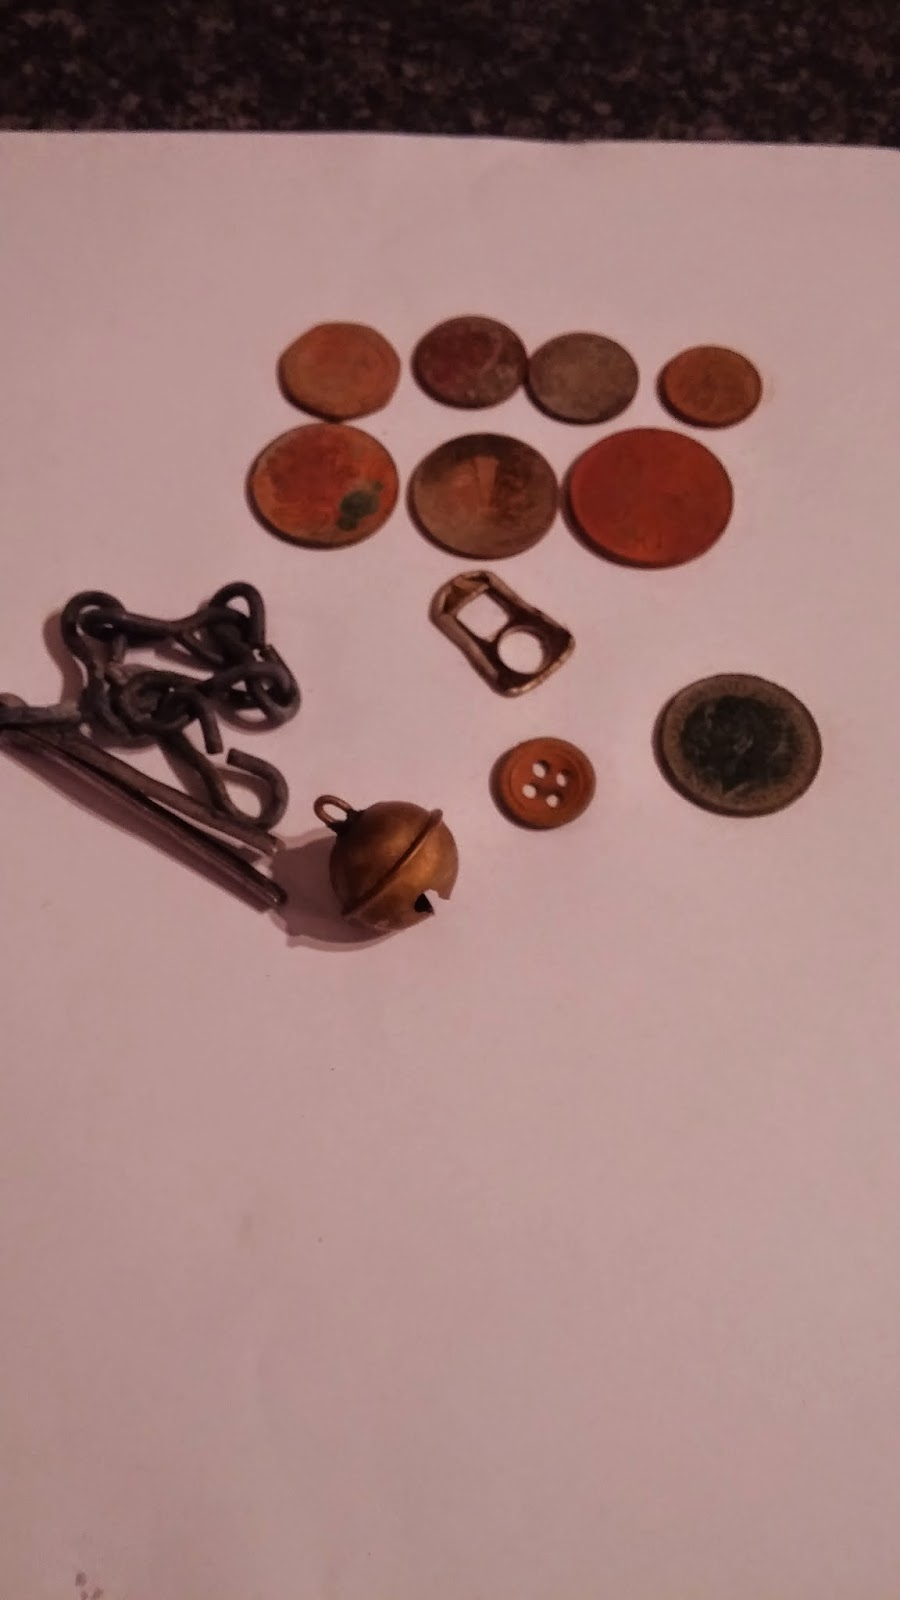 Beach Metal Detecting At Filey 18 01 2015 Detecting365 Fun Detector To Findcoins The A Photo Of My Finds